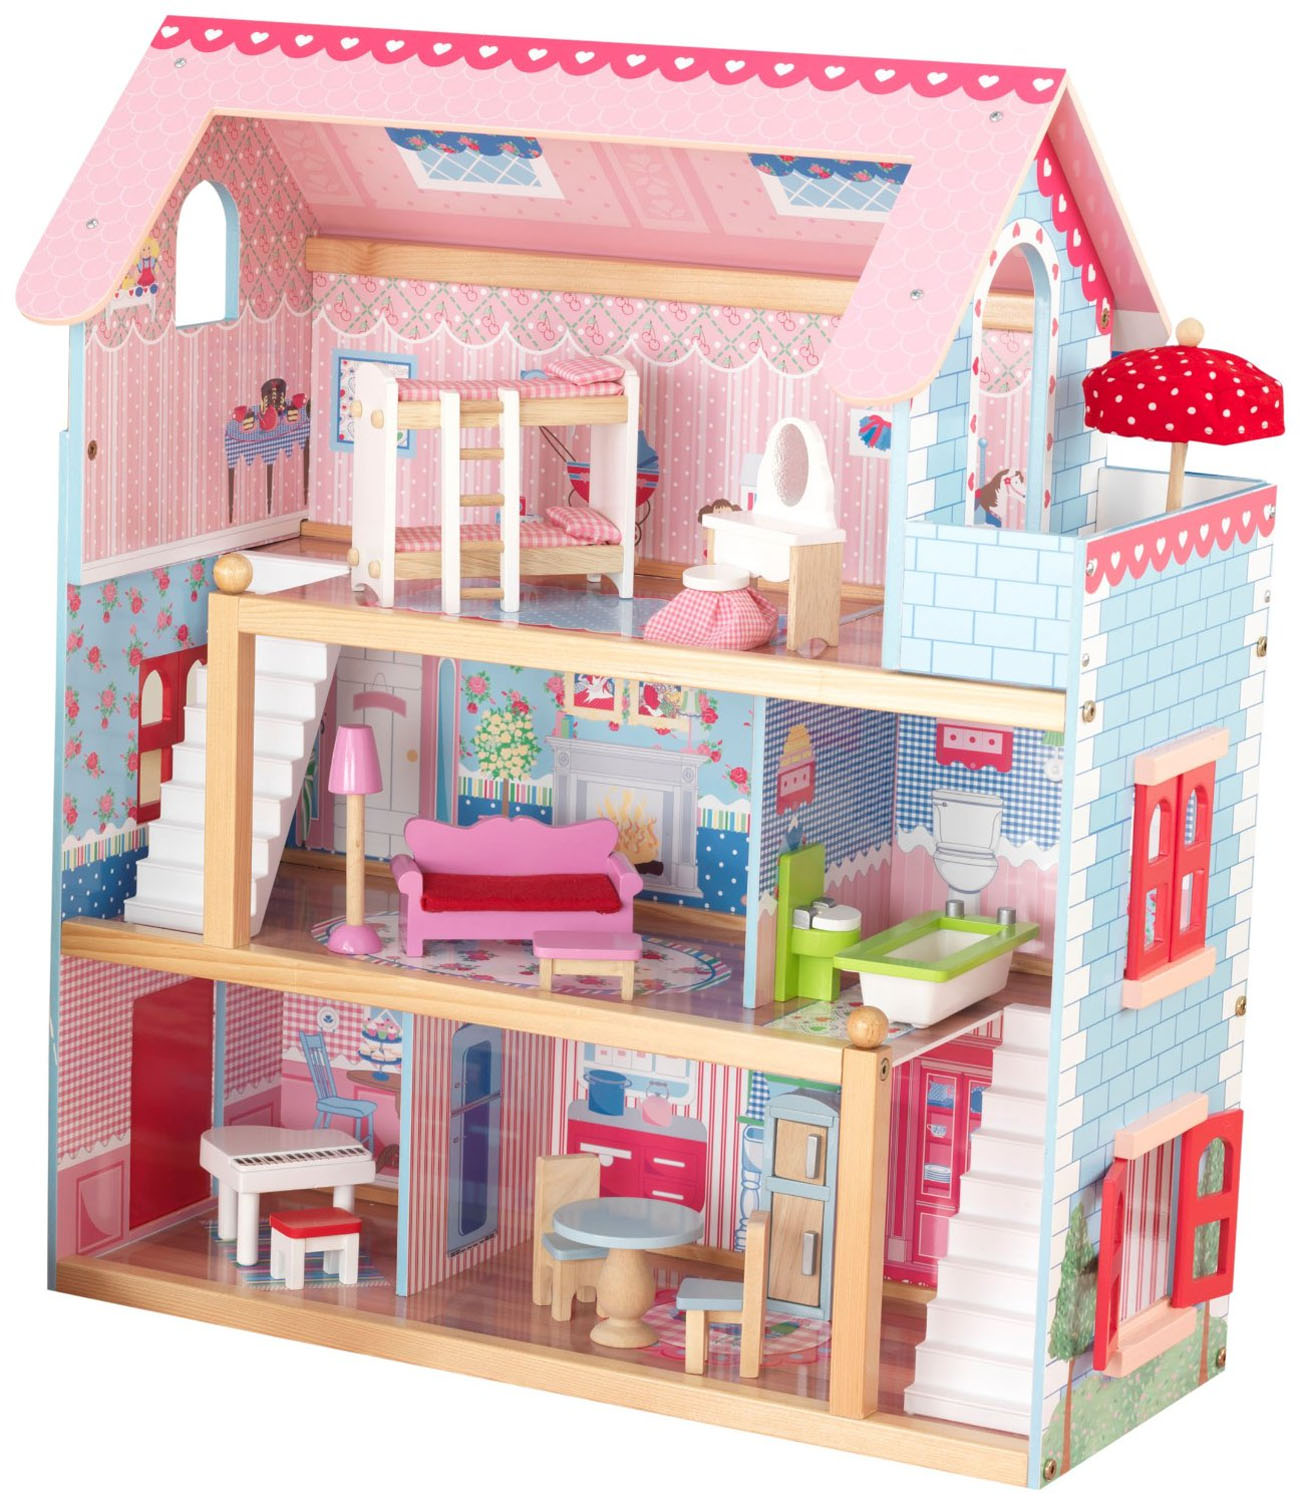 Pleasing Girls Toys Events Toys Toys Girls News Girls Age 5 Girls At Walmart Toys baby Toys For Girls